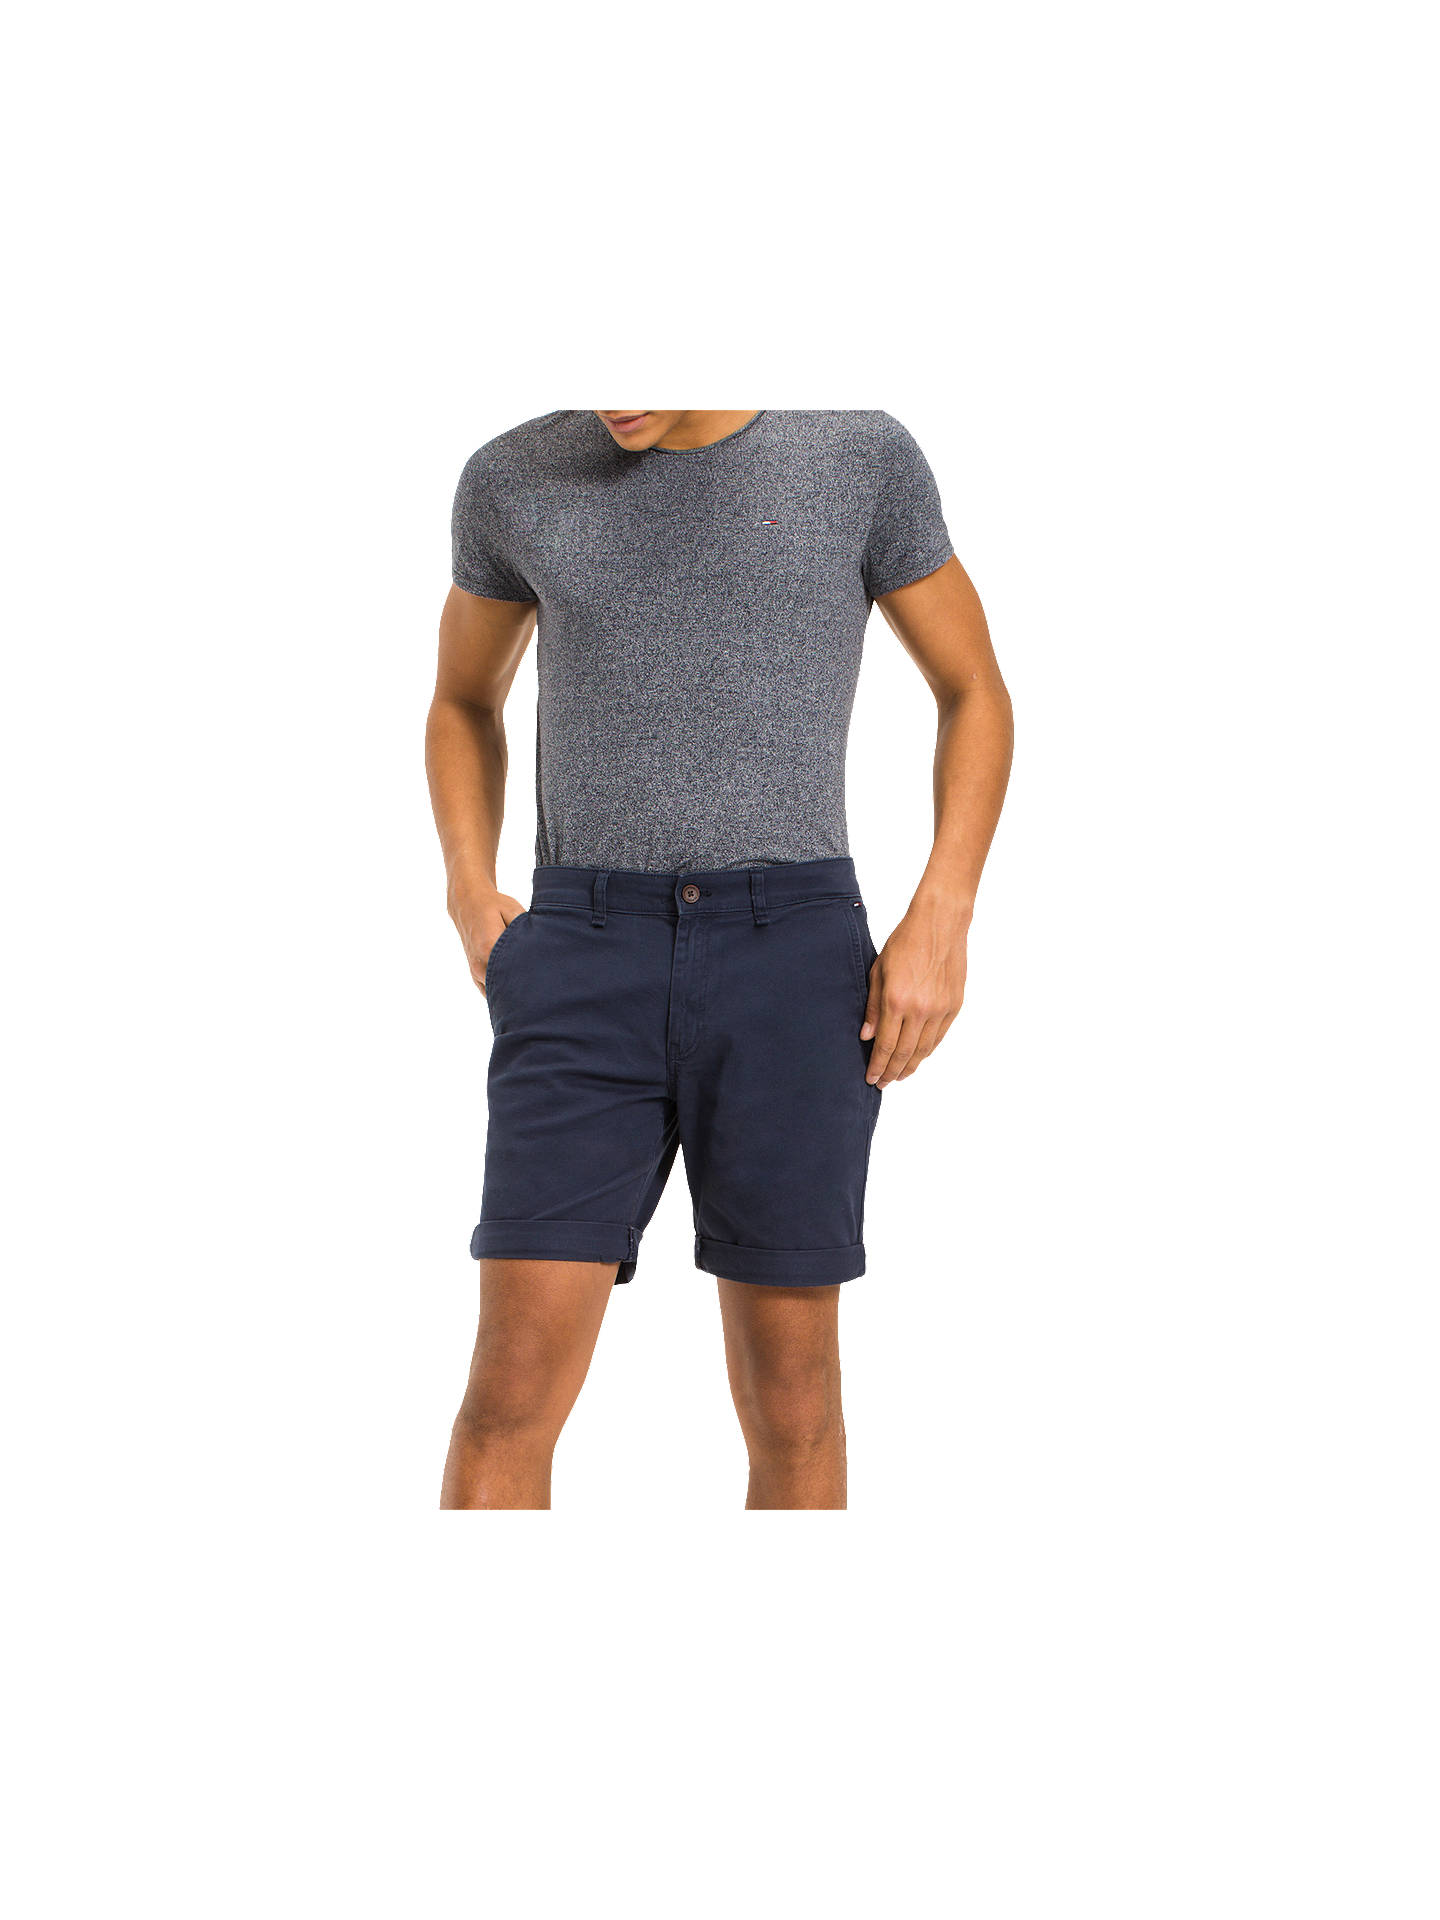 845226c4 Buy Tommy Jeans Freddy Chino Shorts, Black Iris, 30R Online at  johnlewis.com ...